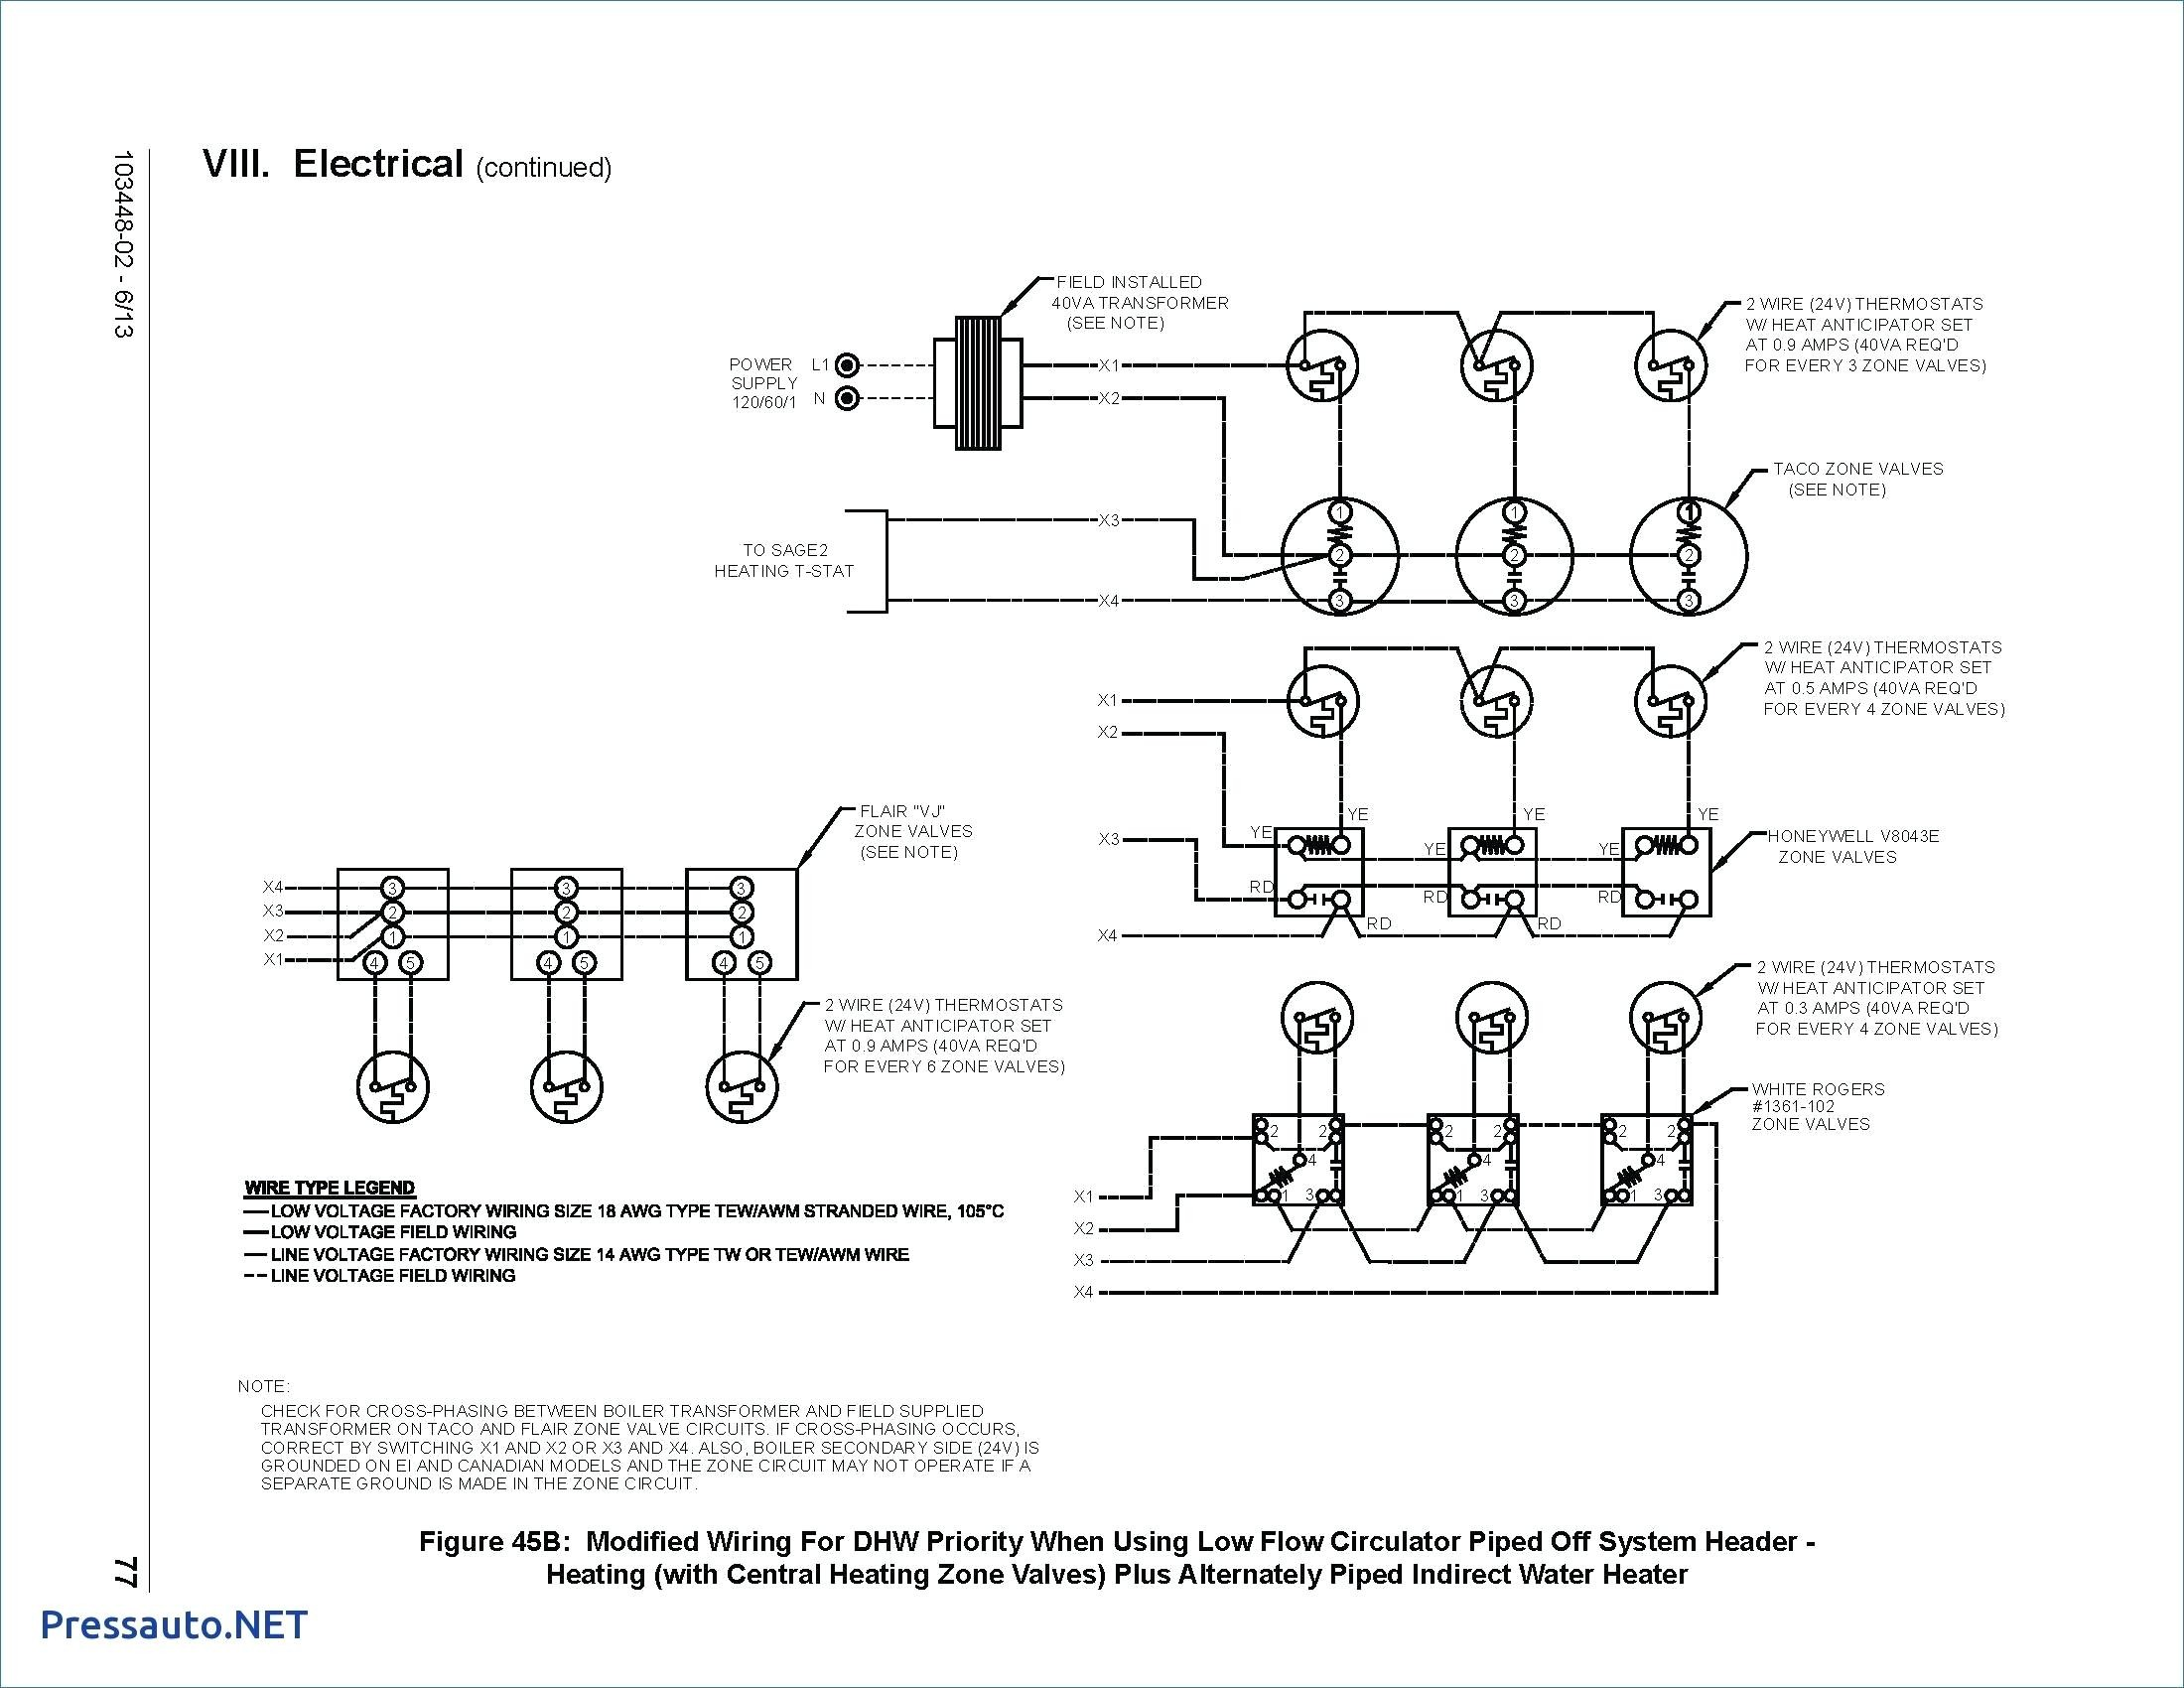 2 Wire thermostat Wiring Diagram 5 2 Day Programmable thermostat Upgrade Wire Wiring Diagram Of 2 Wire thermostat Wiring Diagram